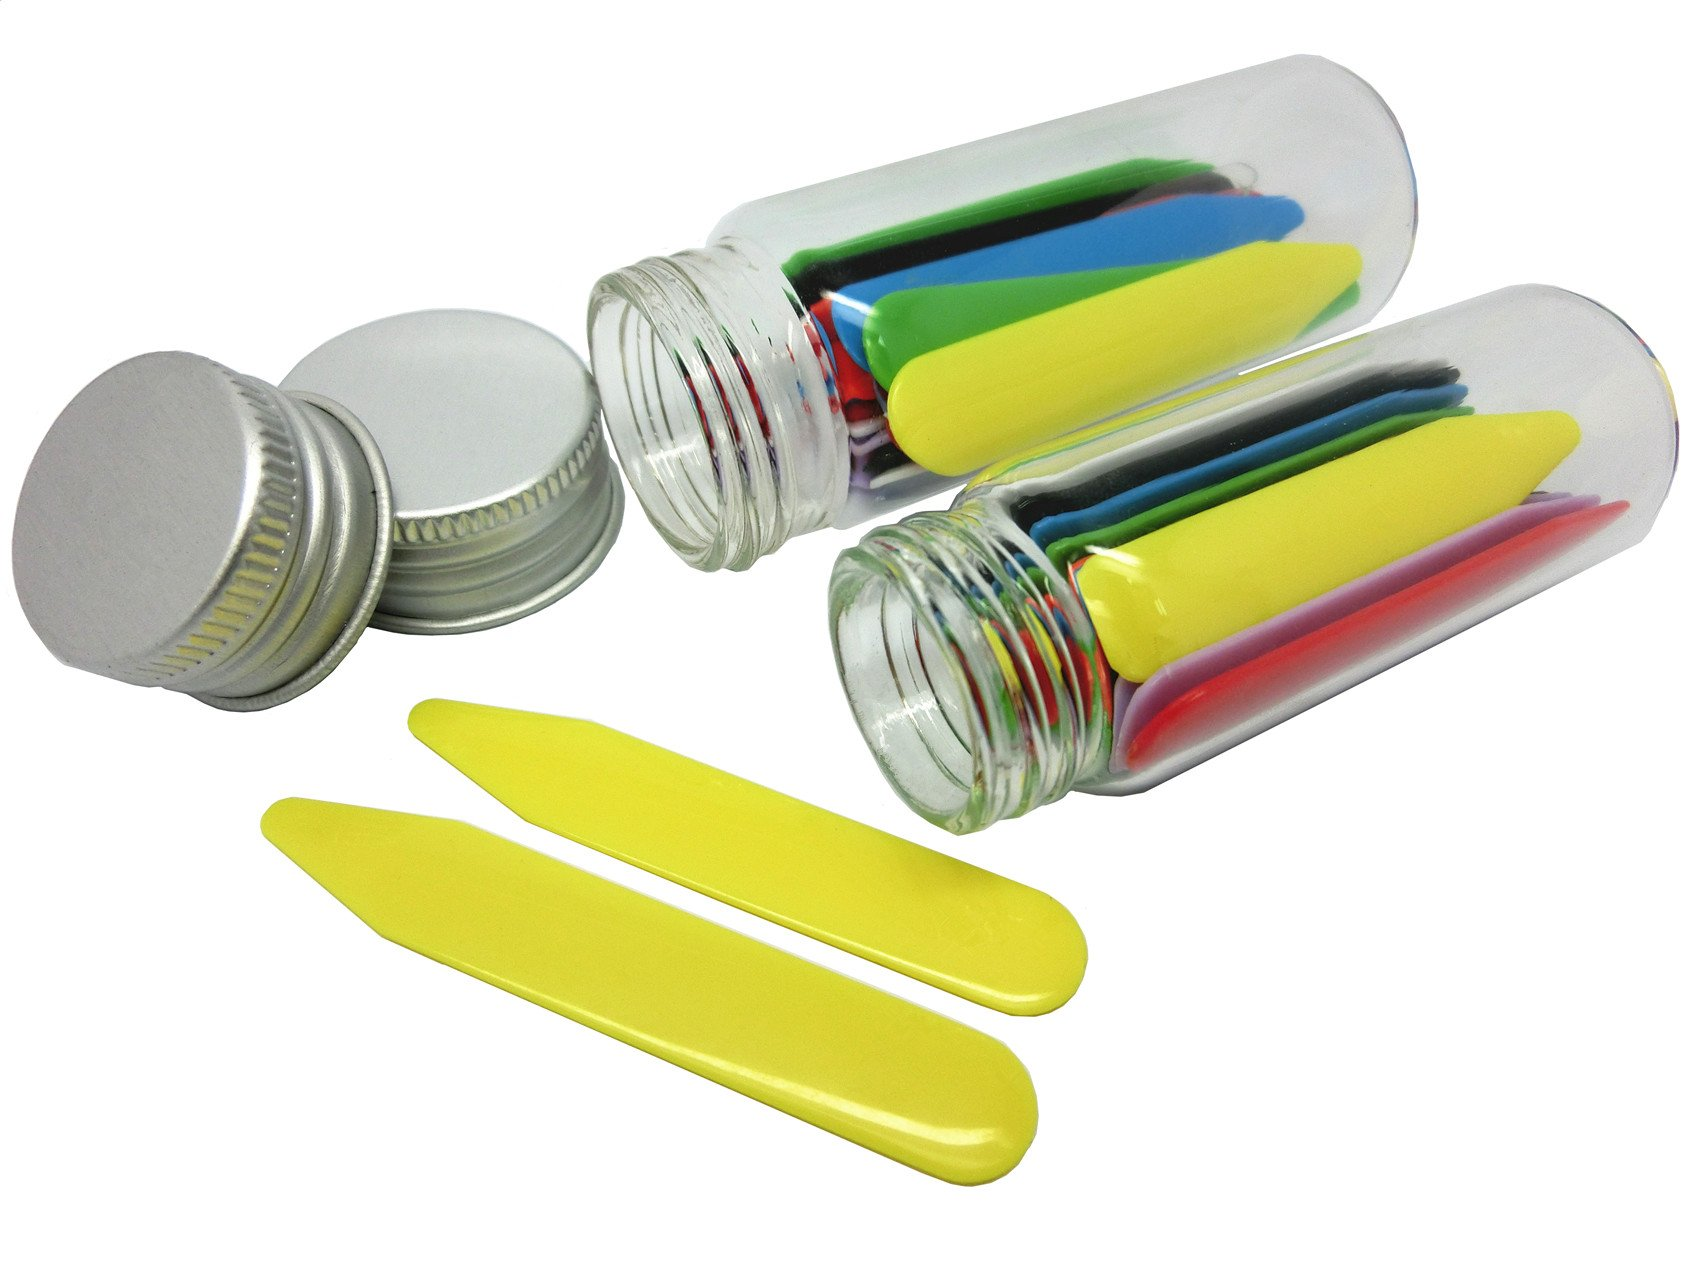 Shang Zun 28 Pcs Colorful Plastic Collar Stays in 2 Glass Bottles 2''/2.37''